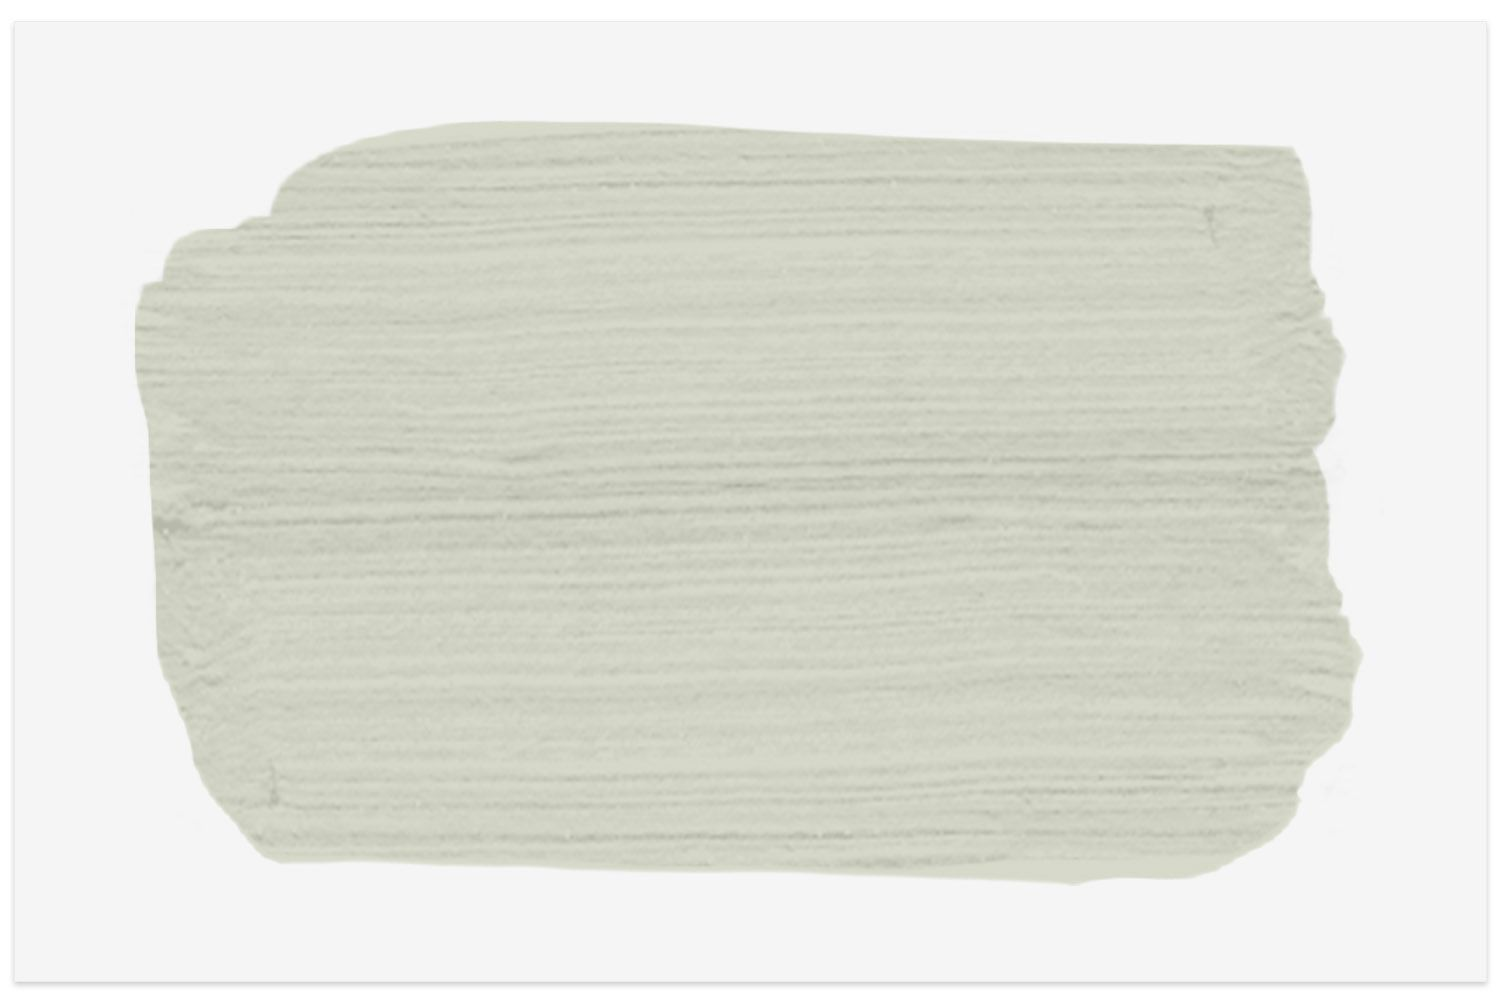 Greige paint swatch from C2